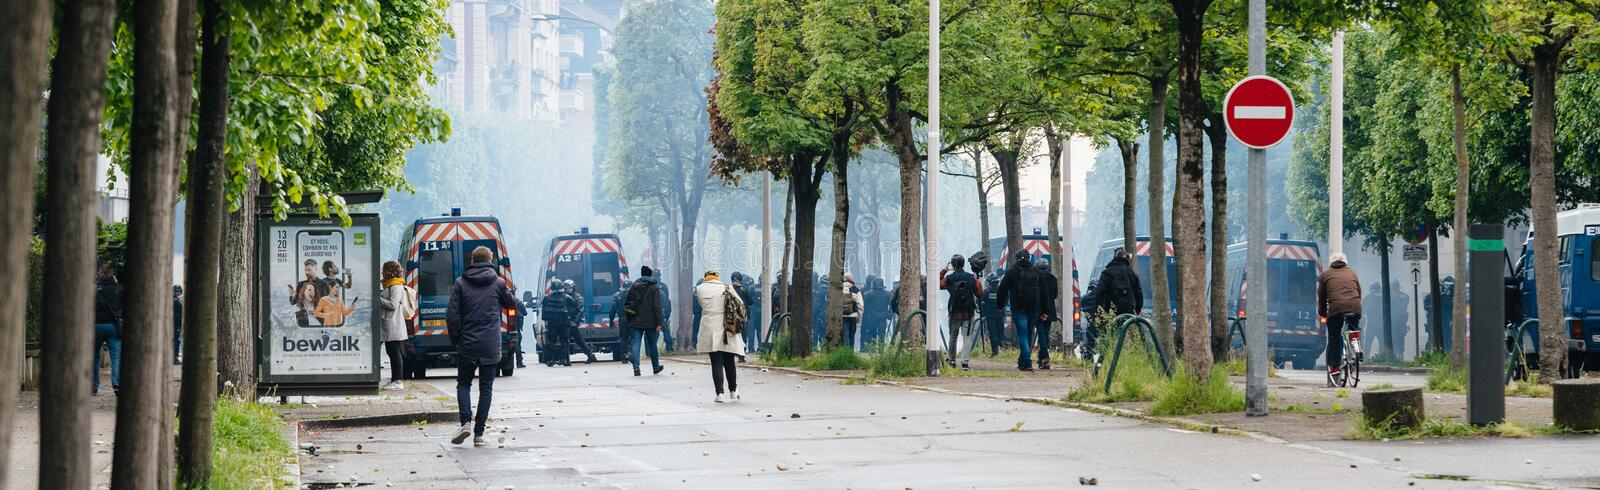 Police secure teargas near European Institutions during Yellow VEsts PRotest. Strasbourg, France - Apr 28, 2019: Wide image of Police securing European royalty free stock photos